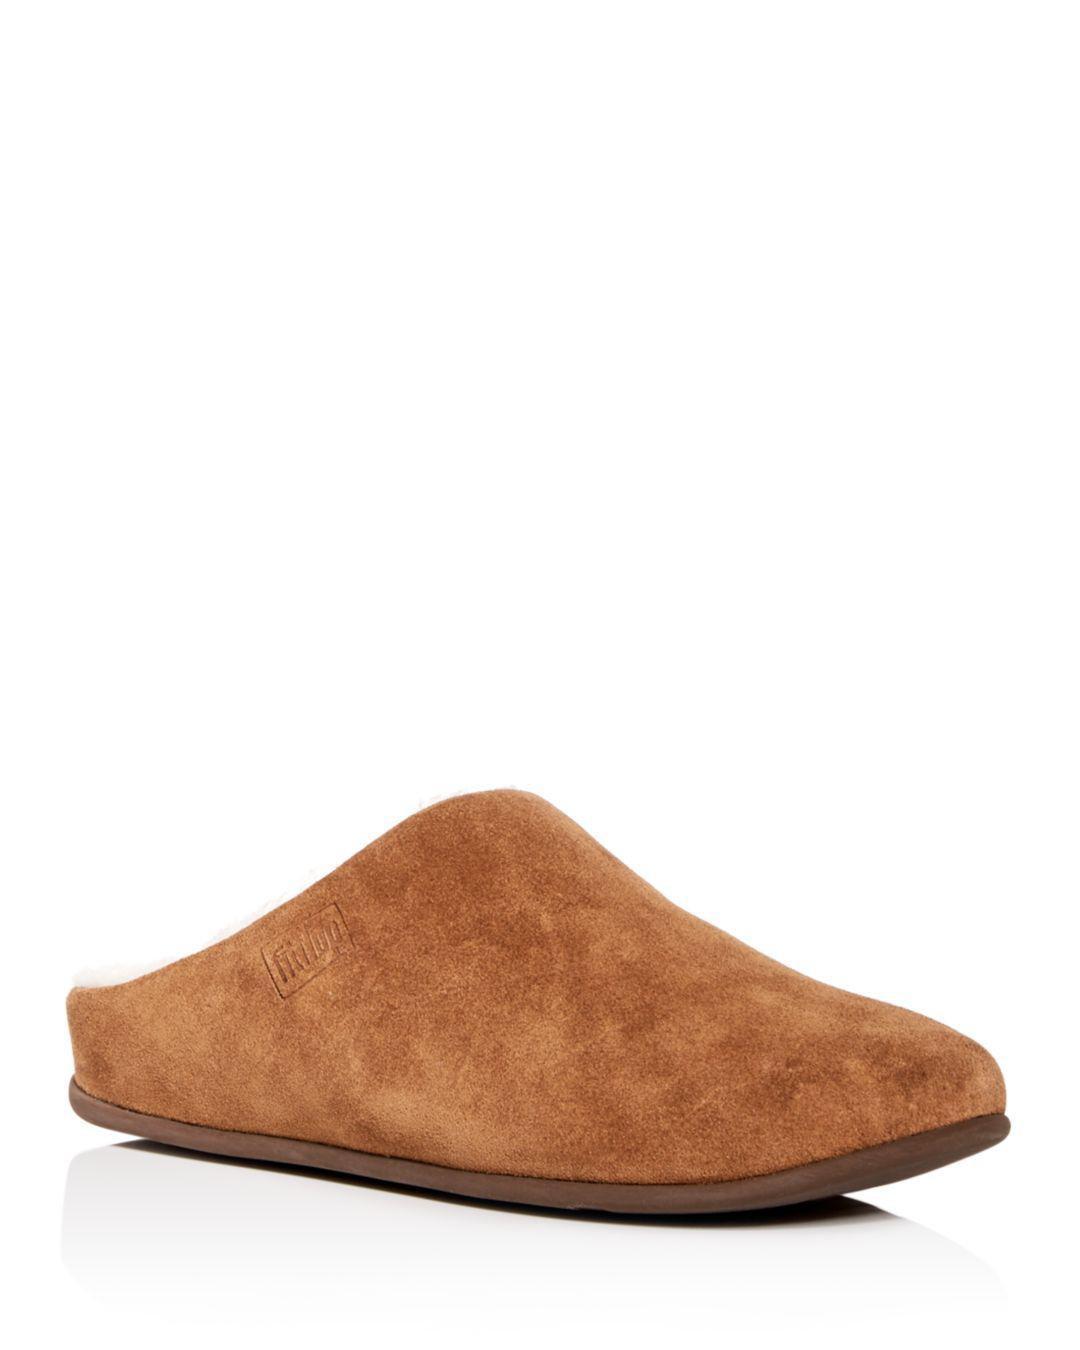 f7e8d2667 Lyst - Fitflop Women s Chrissie Shearling Slippers in Brown